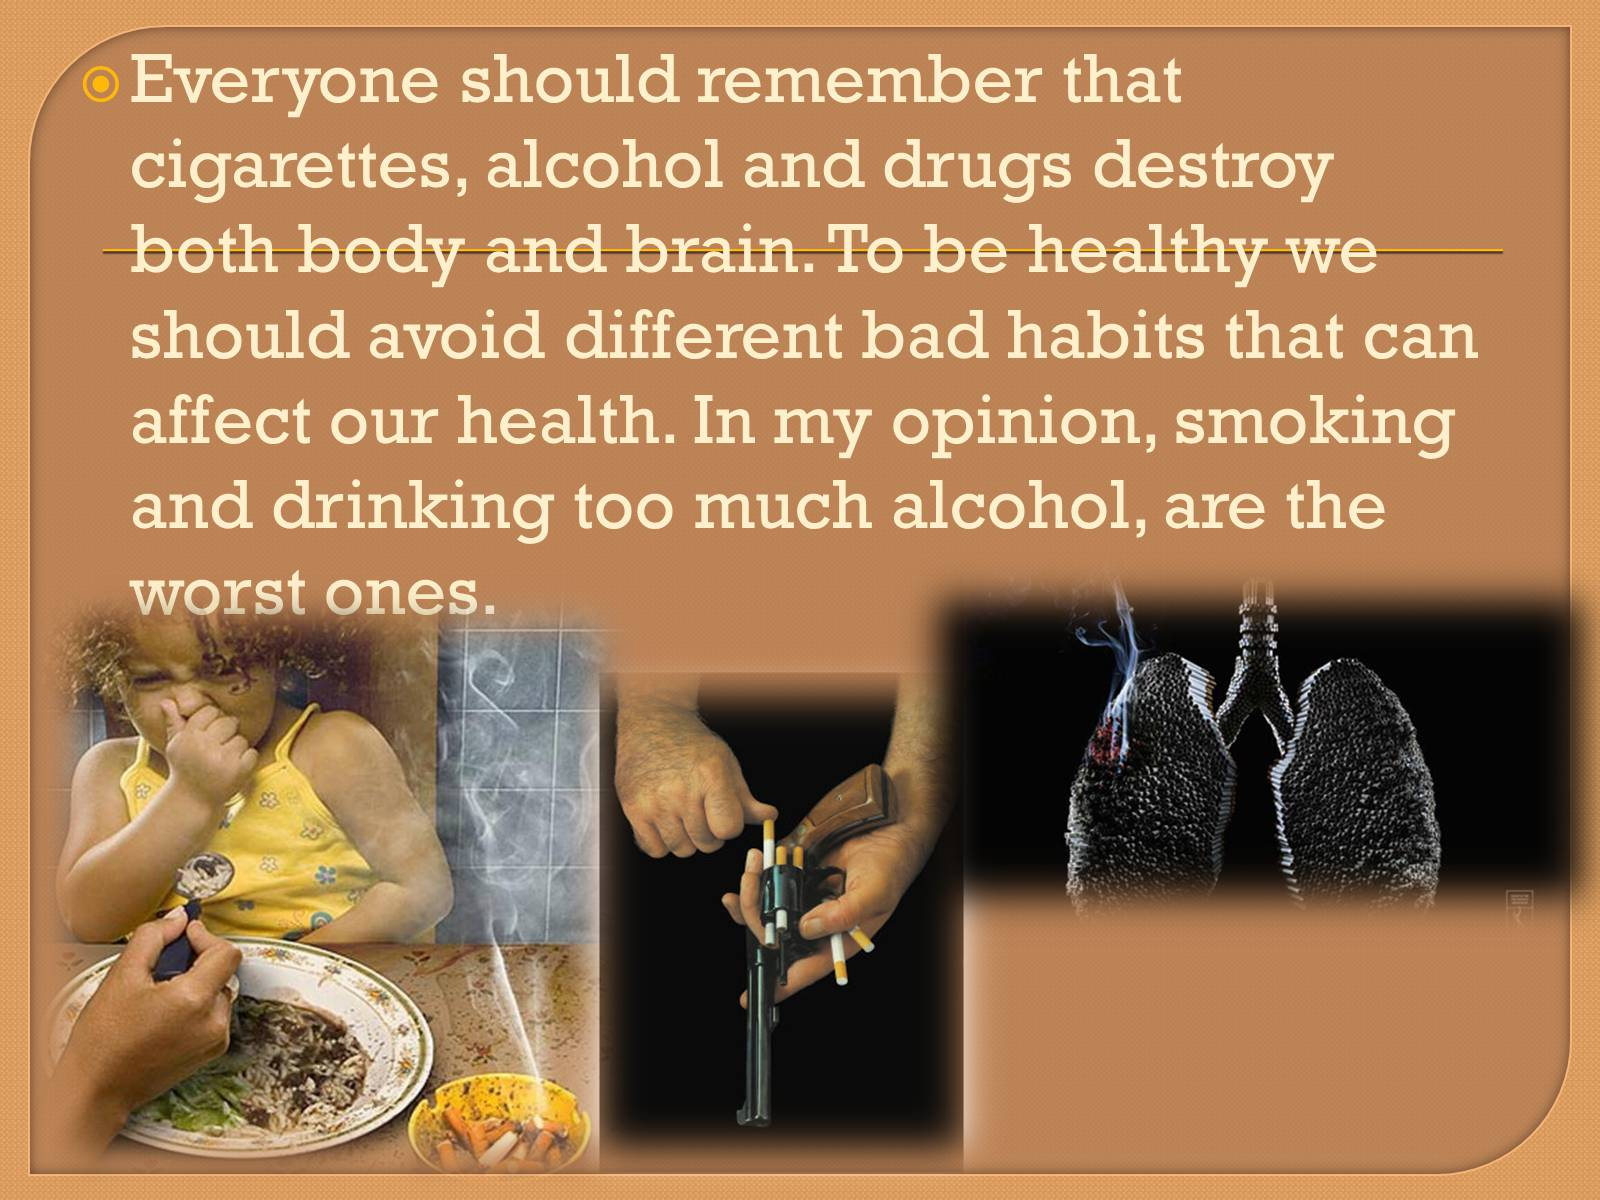 morality and healthy habits The most commonly given moral objection to meat-eating is that, for most people living in the developed world, it is not necessary for survival or health some argue that slaughtering animals solely because people enjoy the taste of meat is wrong and morally unjustifiable.